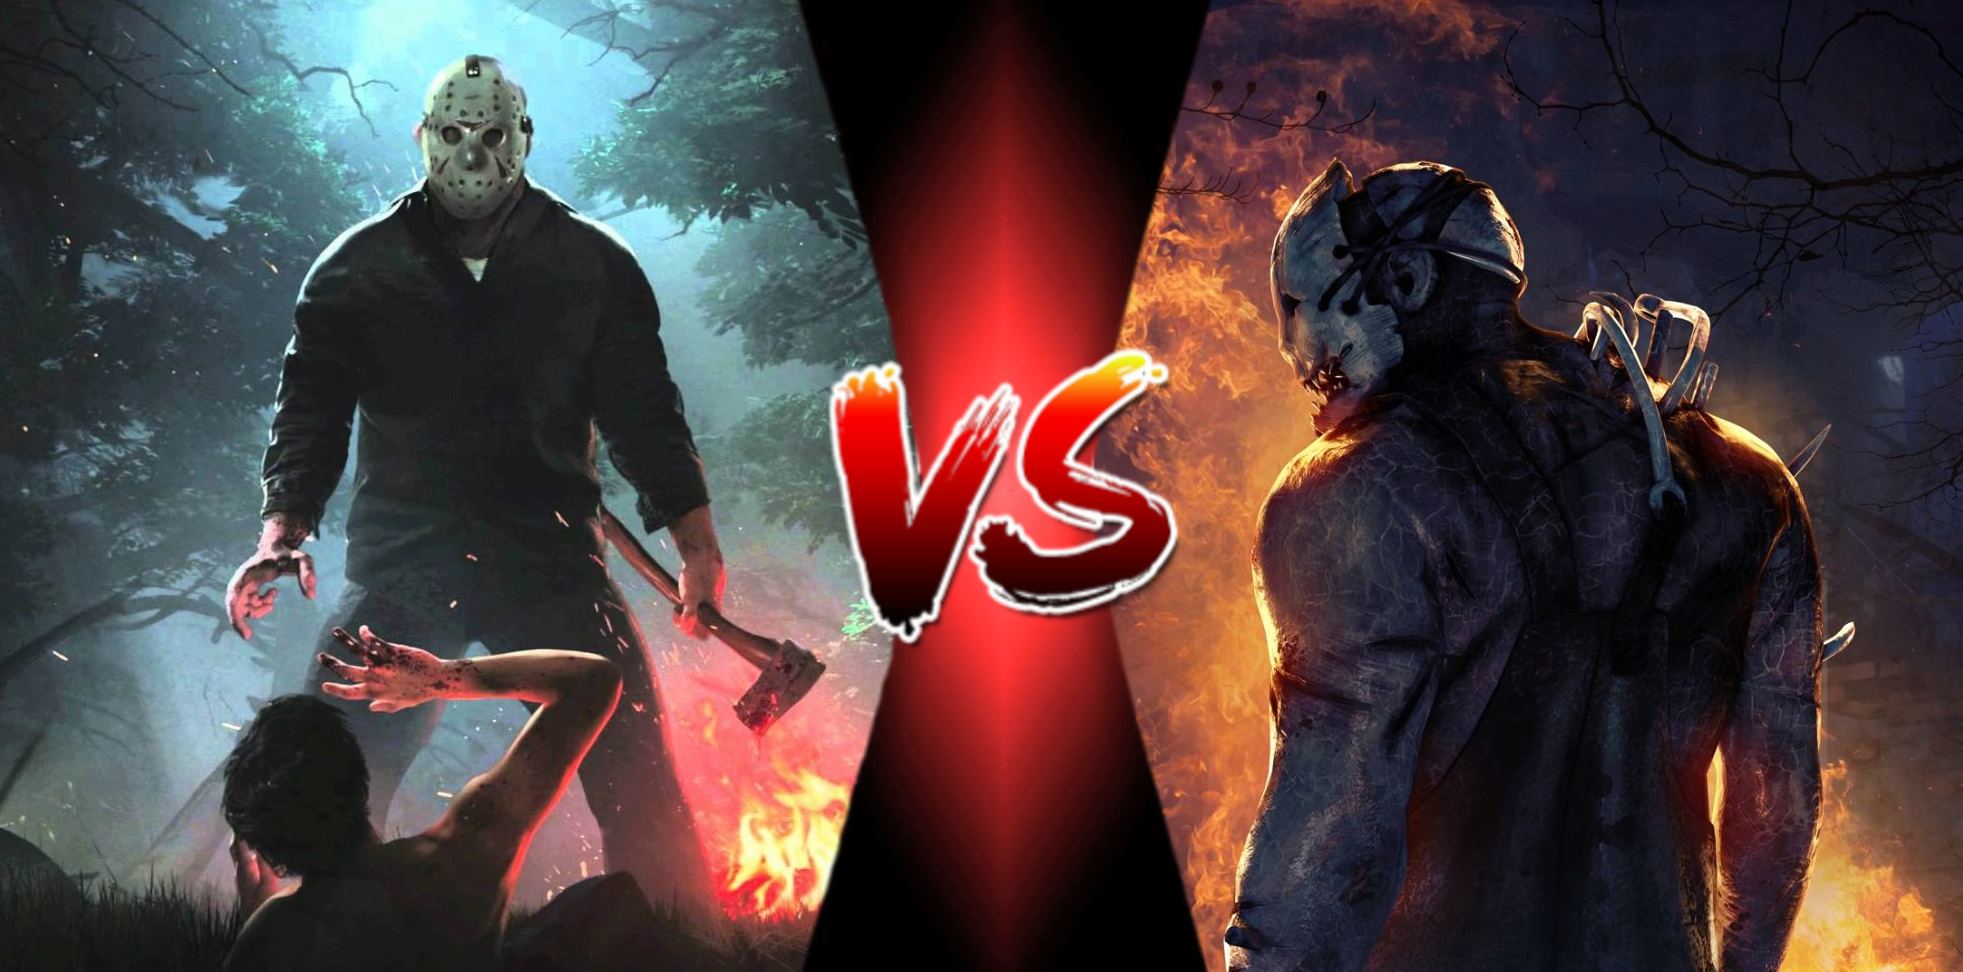 Opinion About Friday the 13th Vs Dead by Daylight Dead-b10